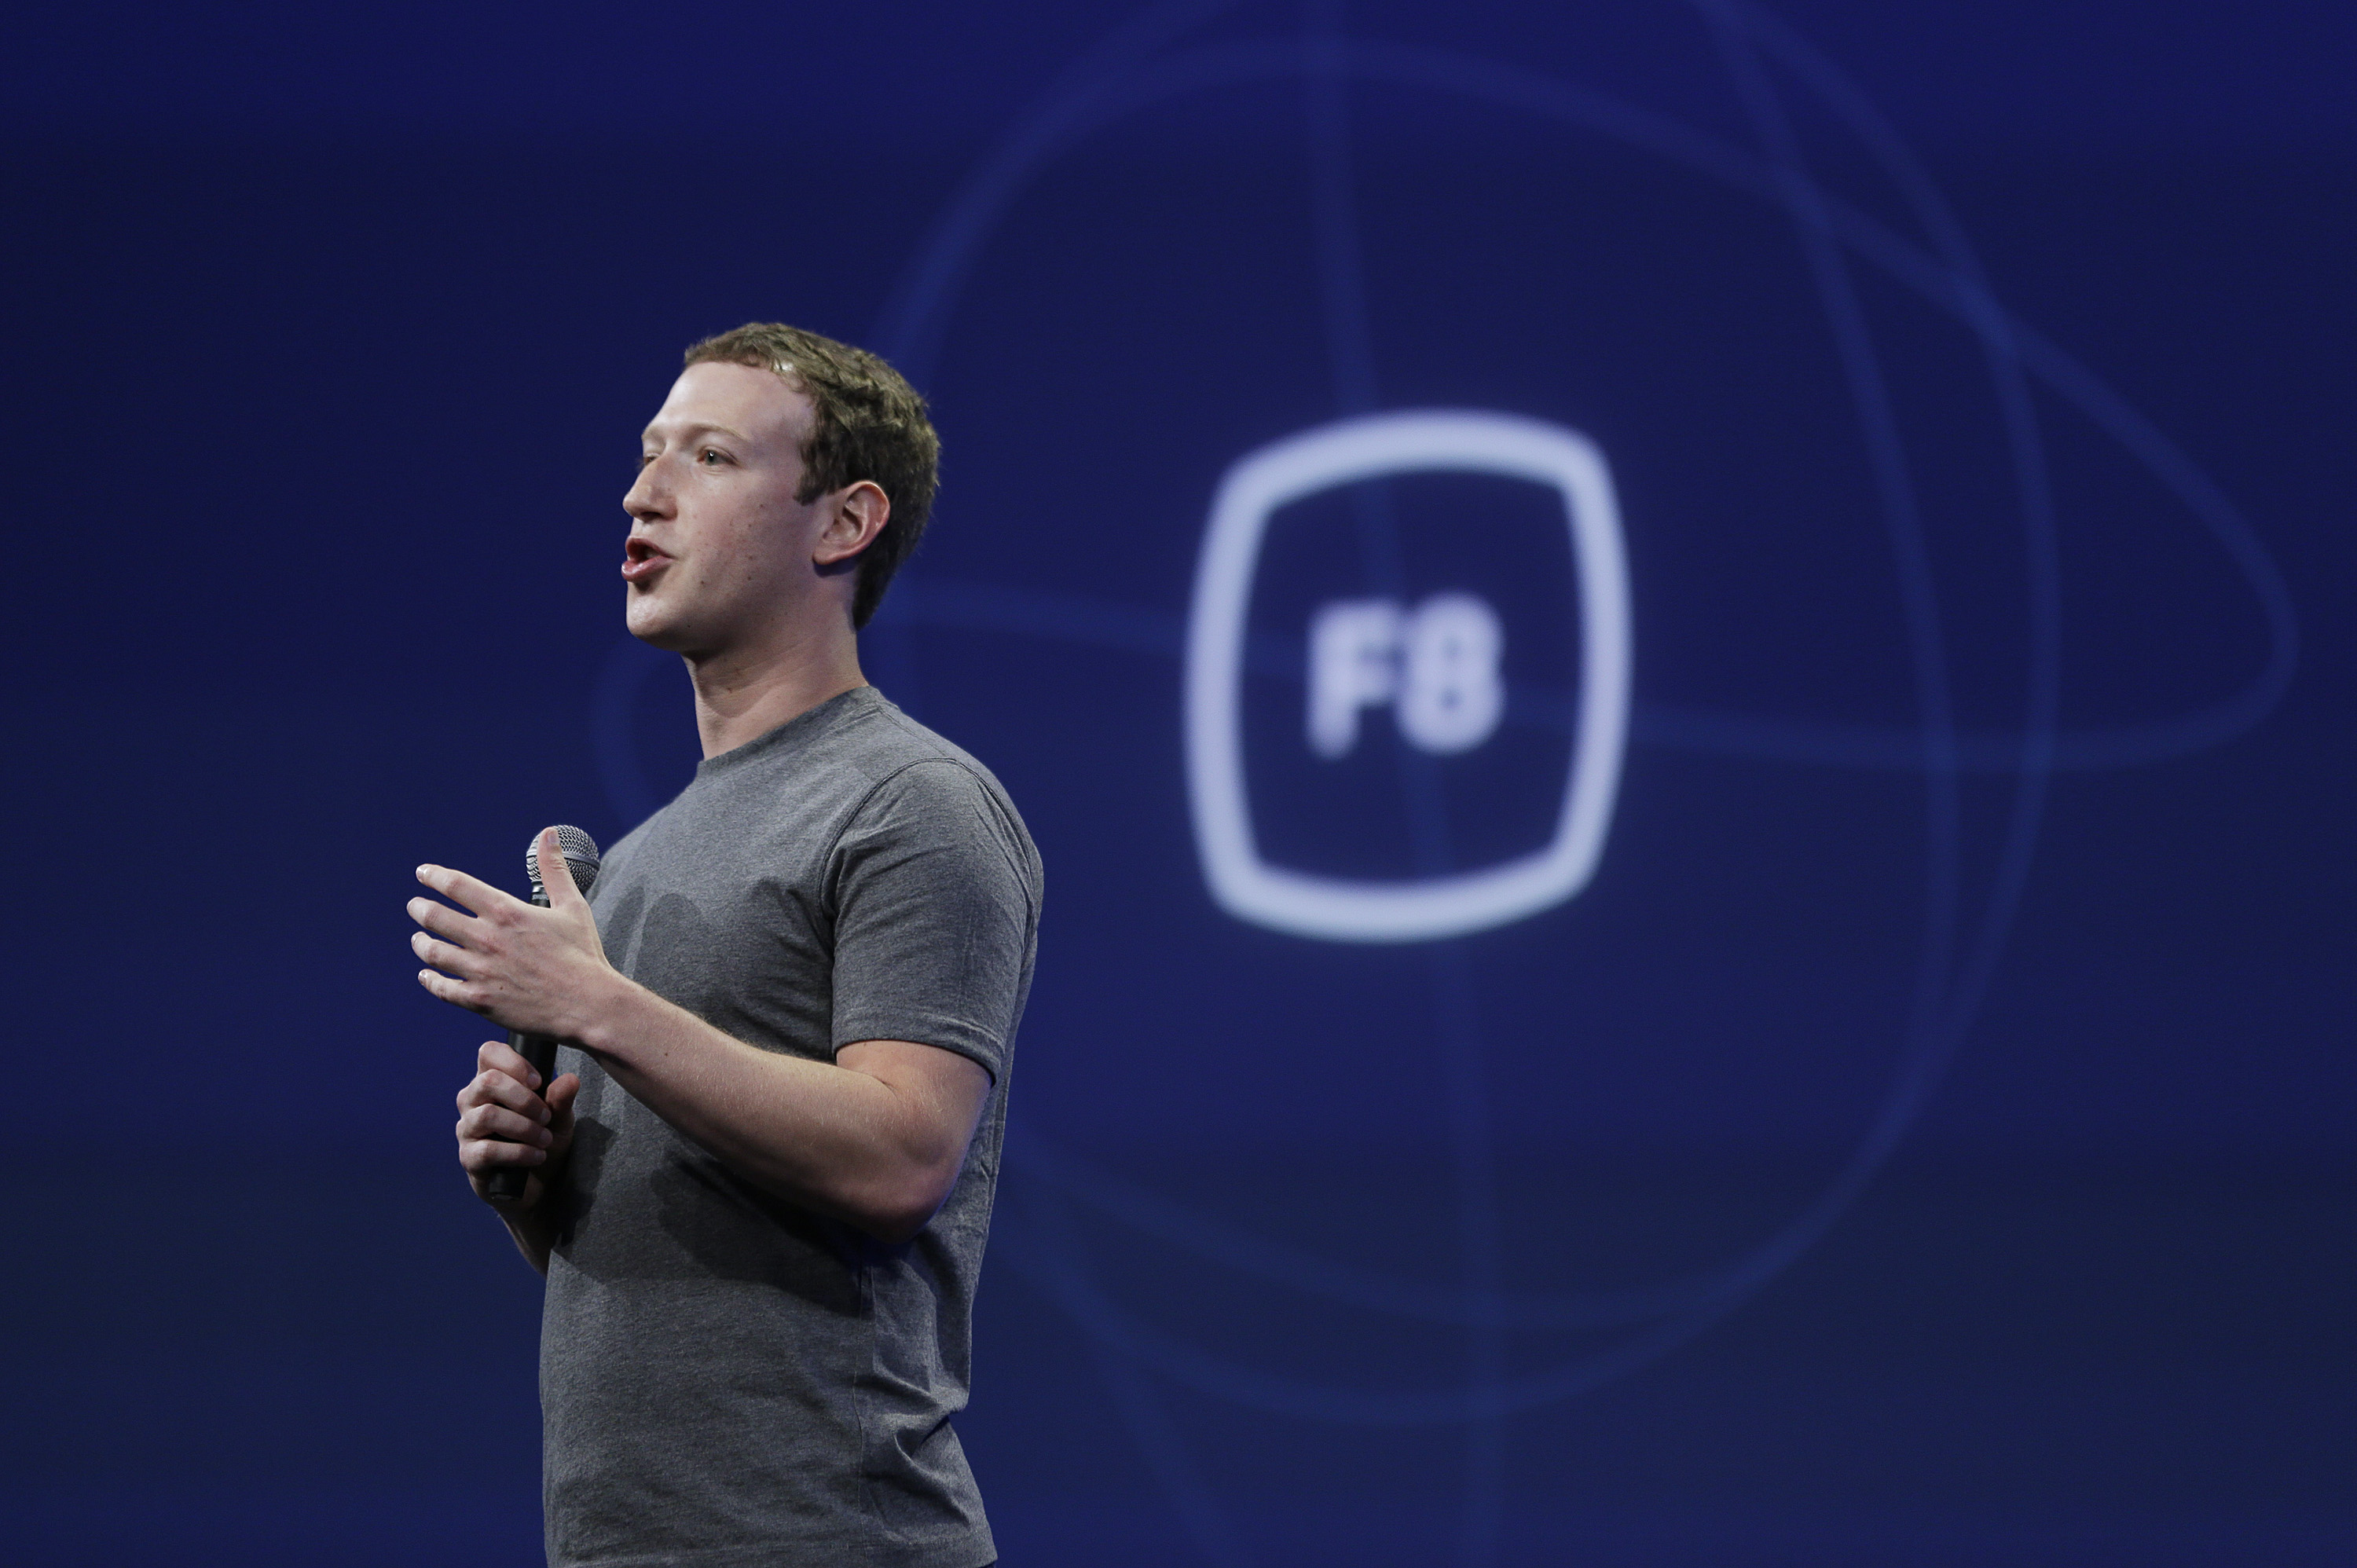 Mark Zuckerberg speaks at the Facebook F8 Developer Conference in San Francisco in March.